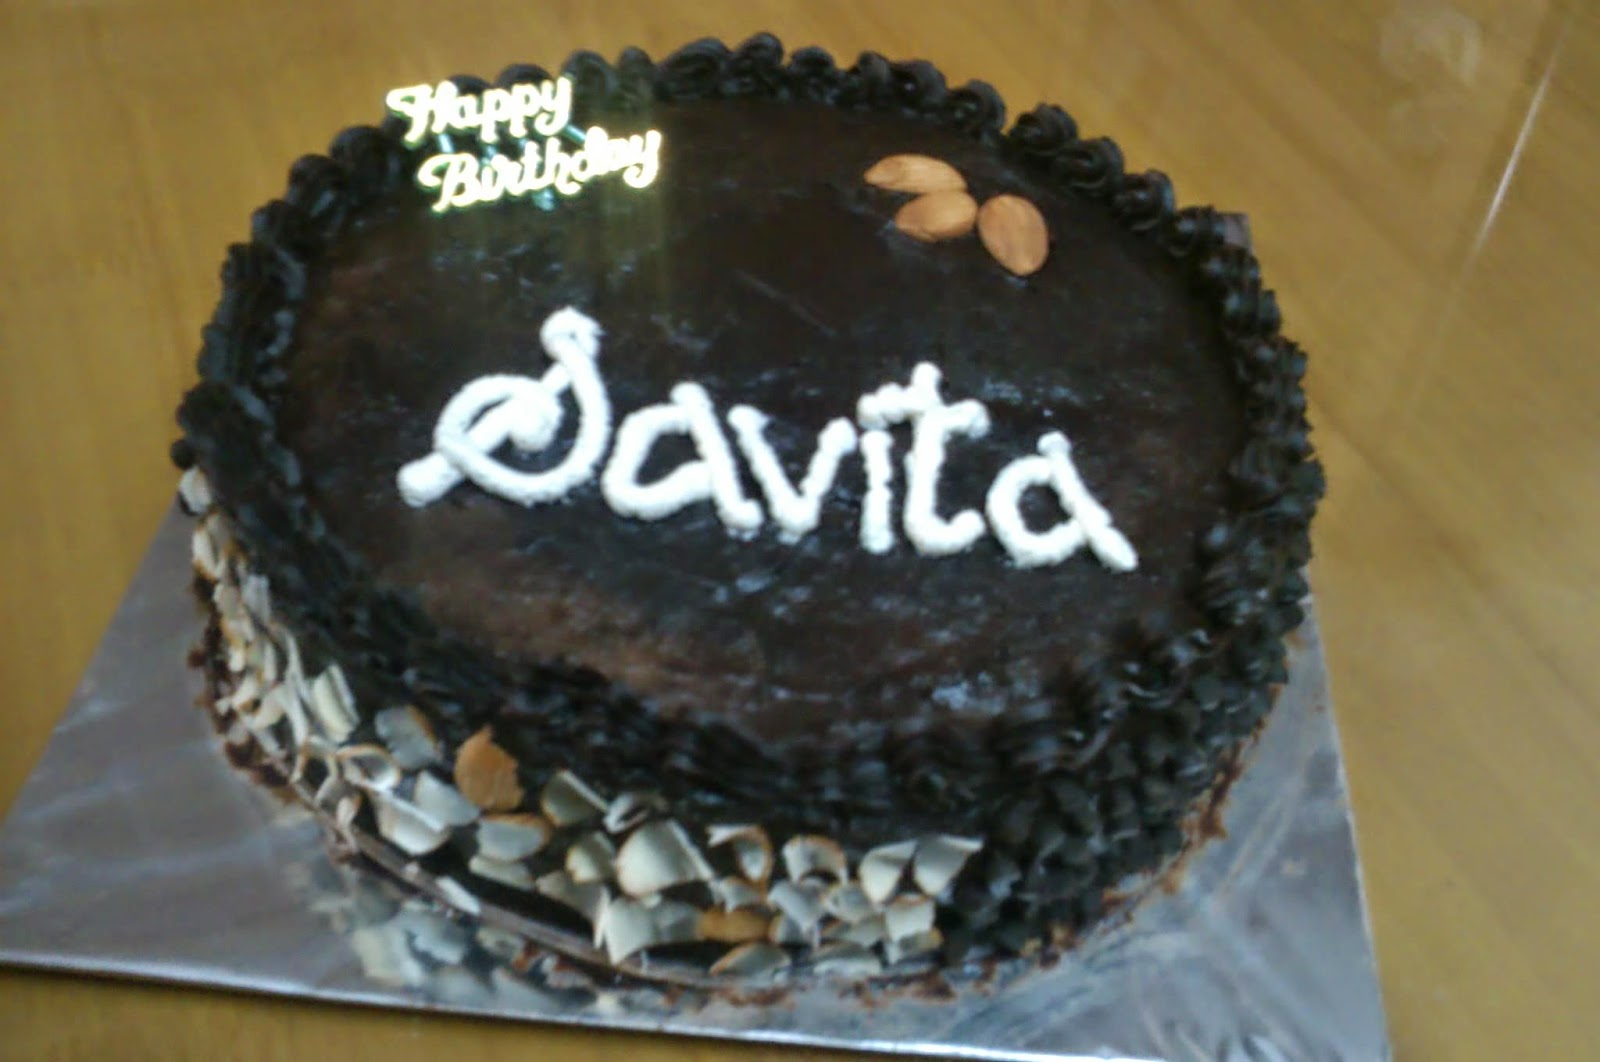 Happy Birthday Savita Cake Image Imaganationface Org